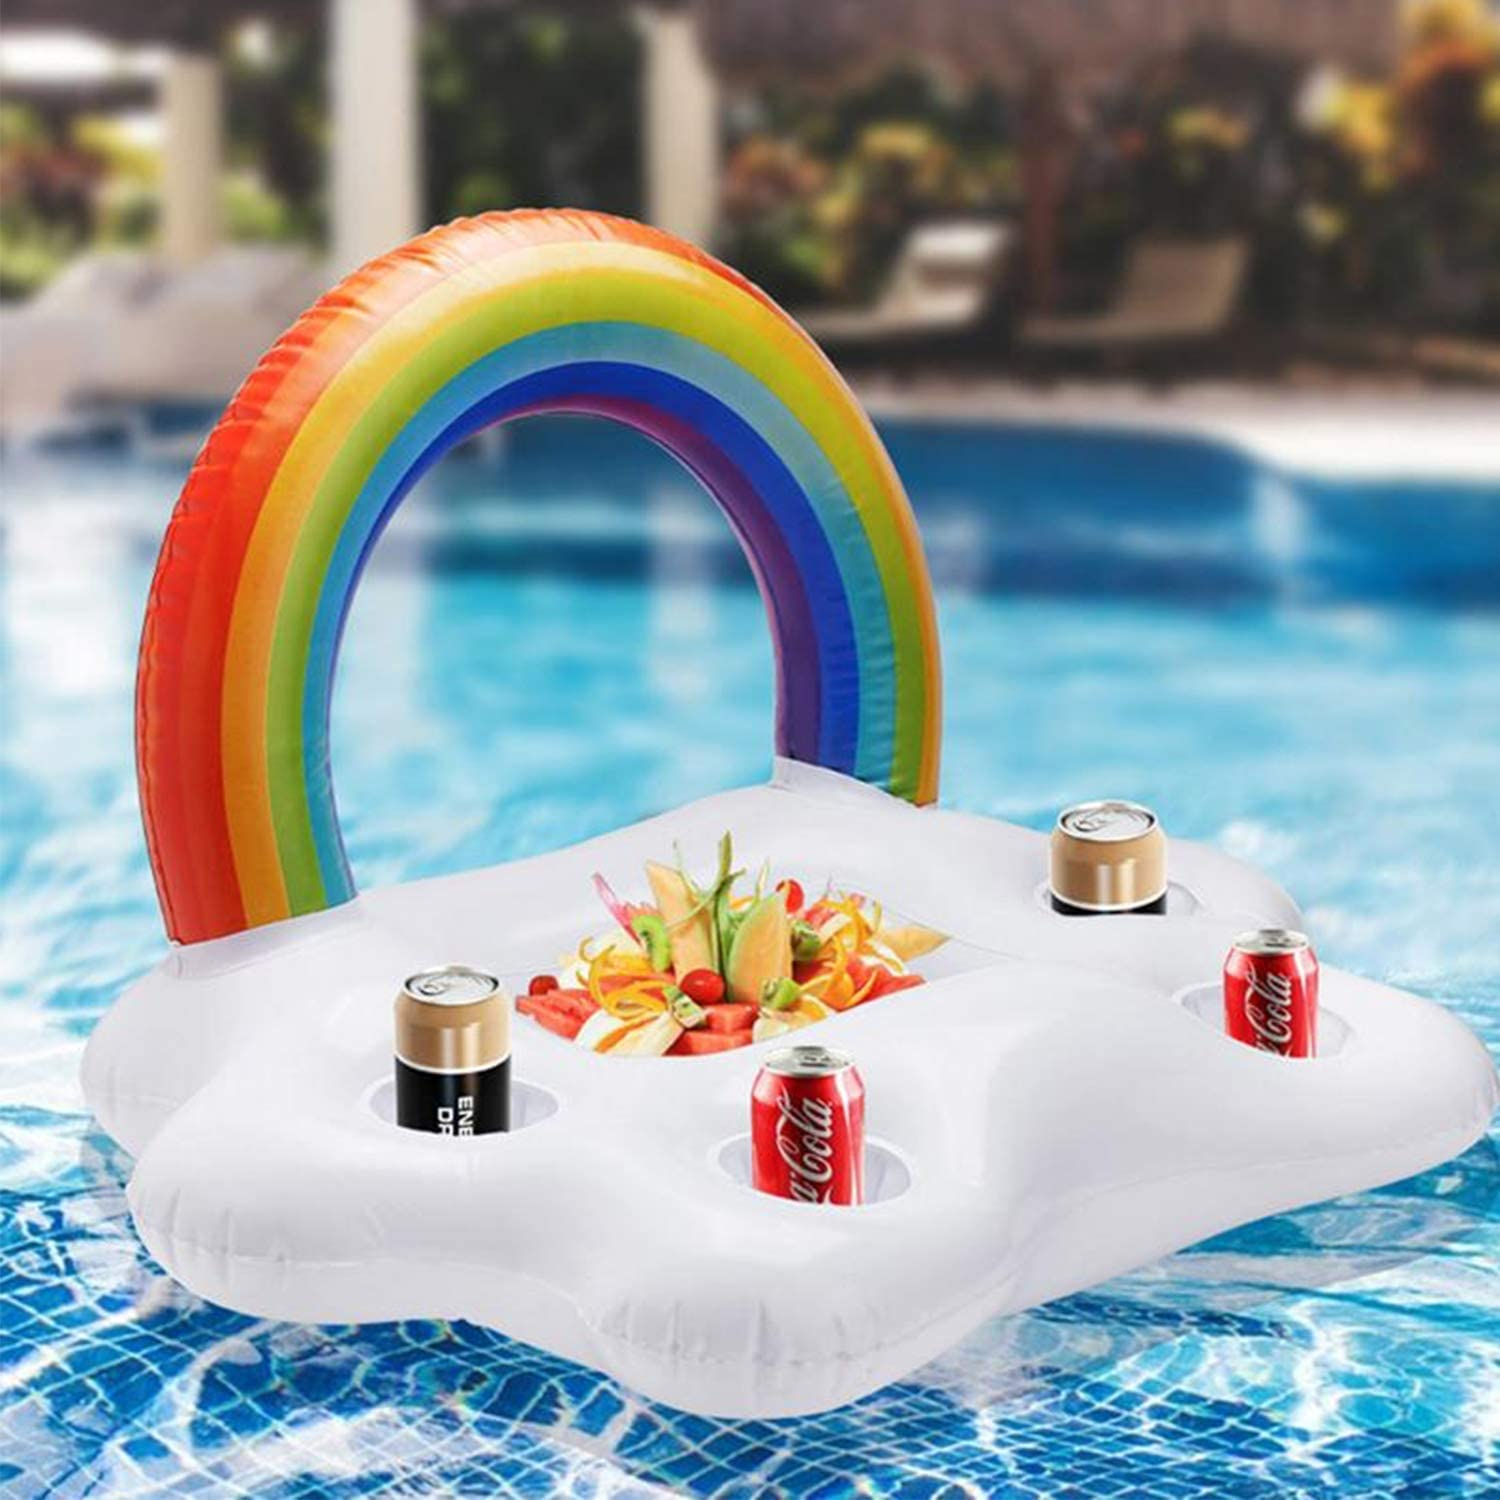 Boxgear Floating Bar for Pool, Inflatable Rainbow Cloud Drink Holder, Drink Float for Pool, Beverage Pool Floats Cooler, Inflatable Drink Holder for Pool, 5 Cup Holder Float for Kids and Adults